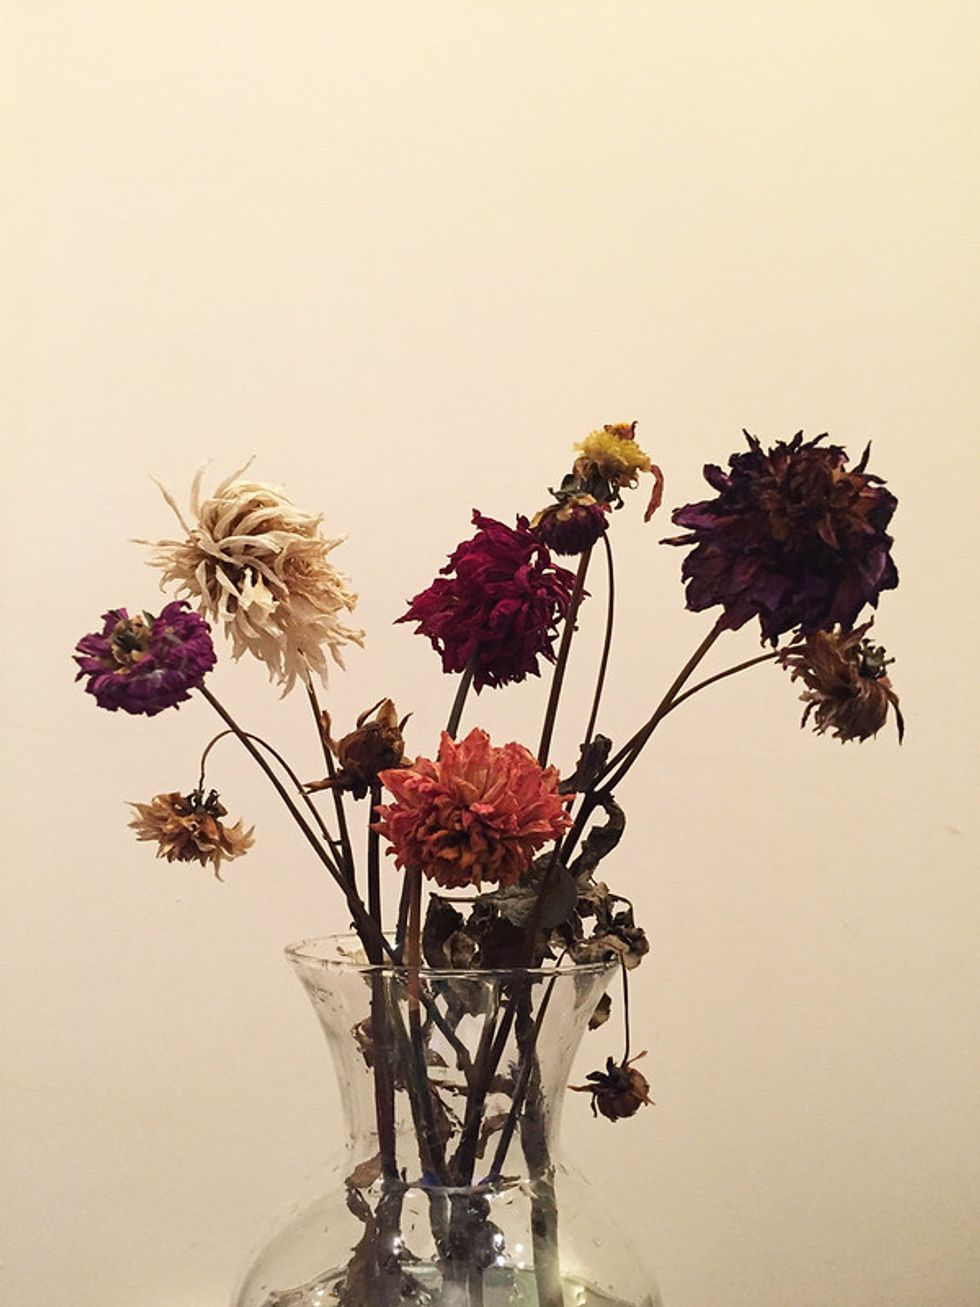 A vase of dead flowers